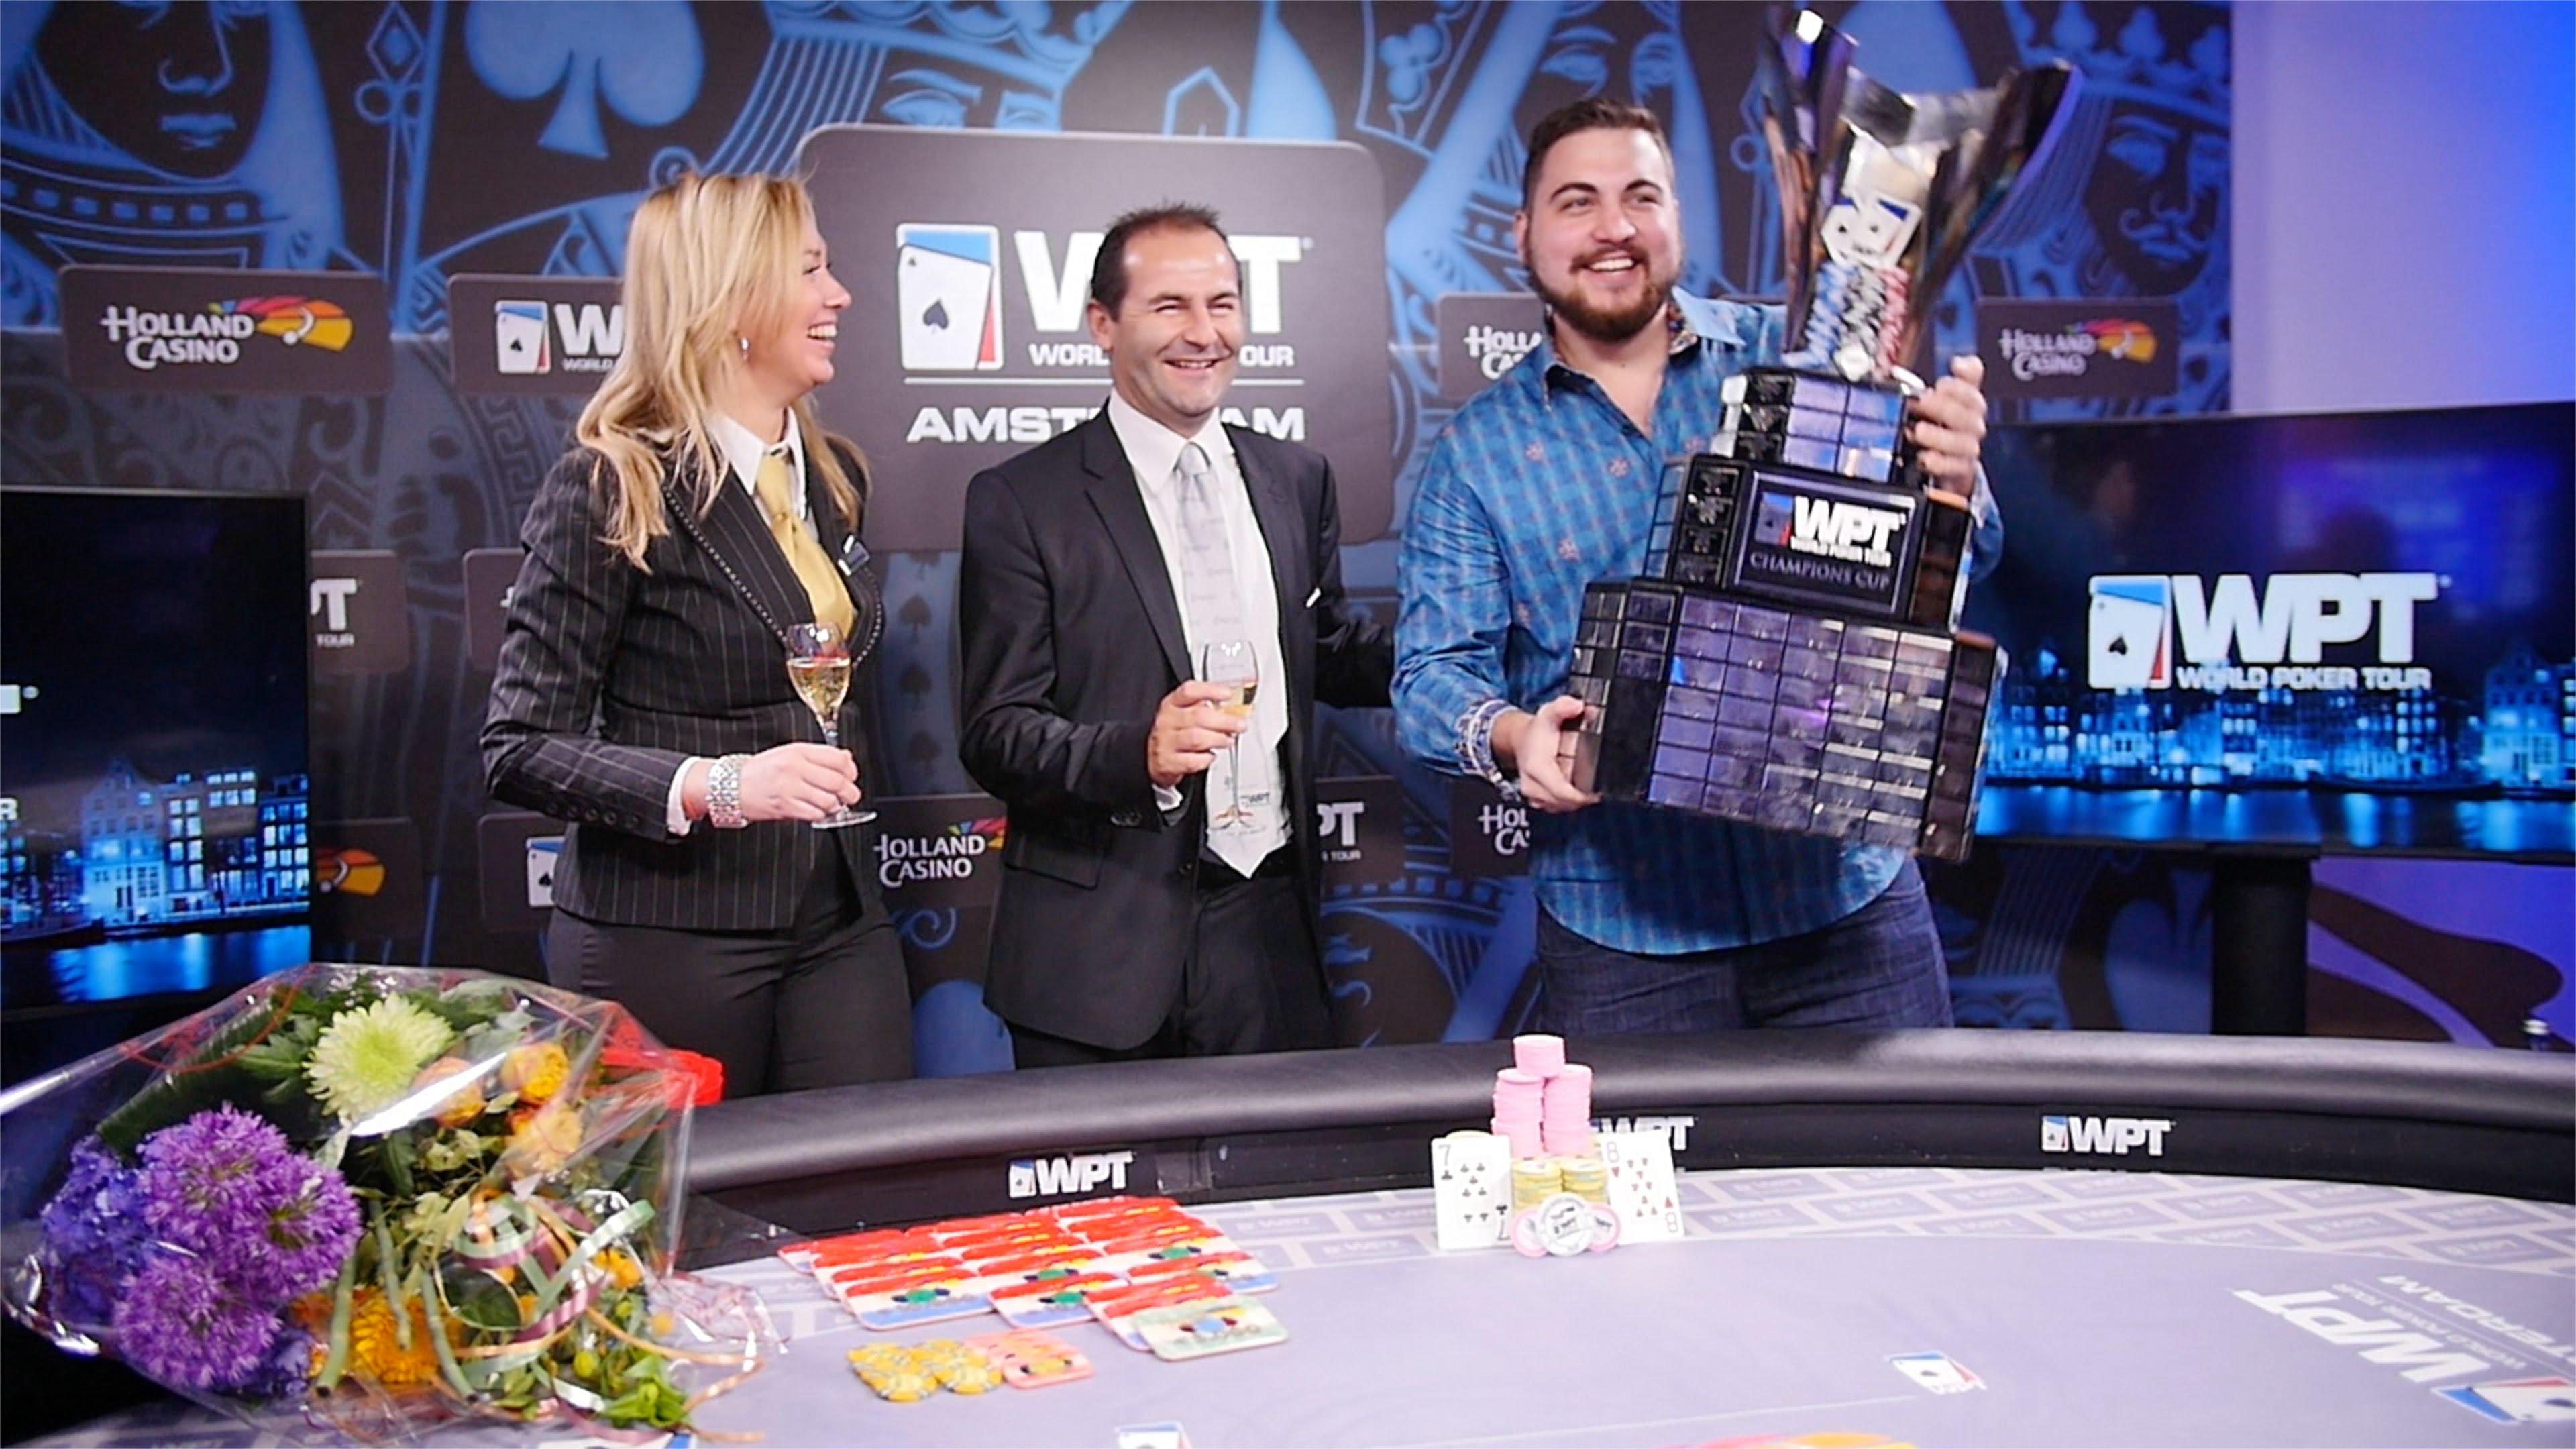 WPT Amsterdam - Andjelko Andrejevic Winner Interview